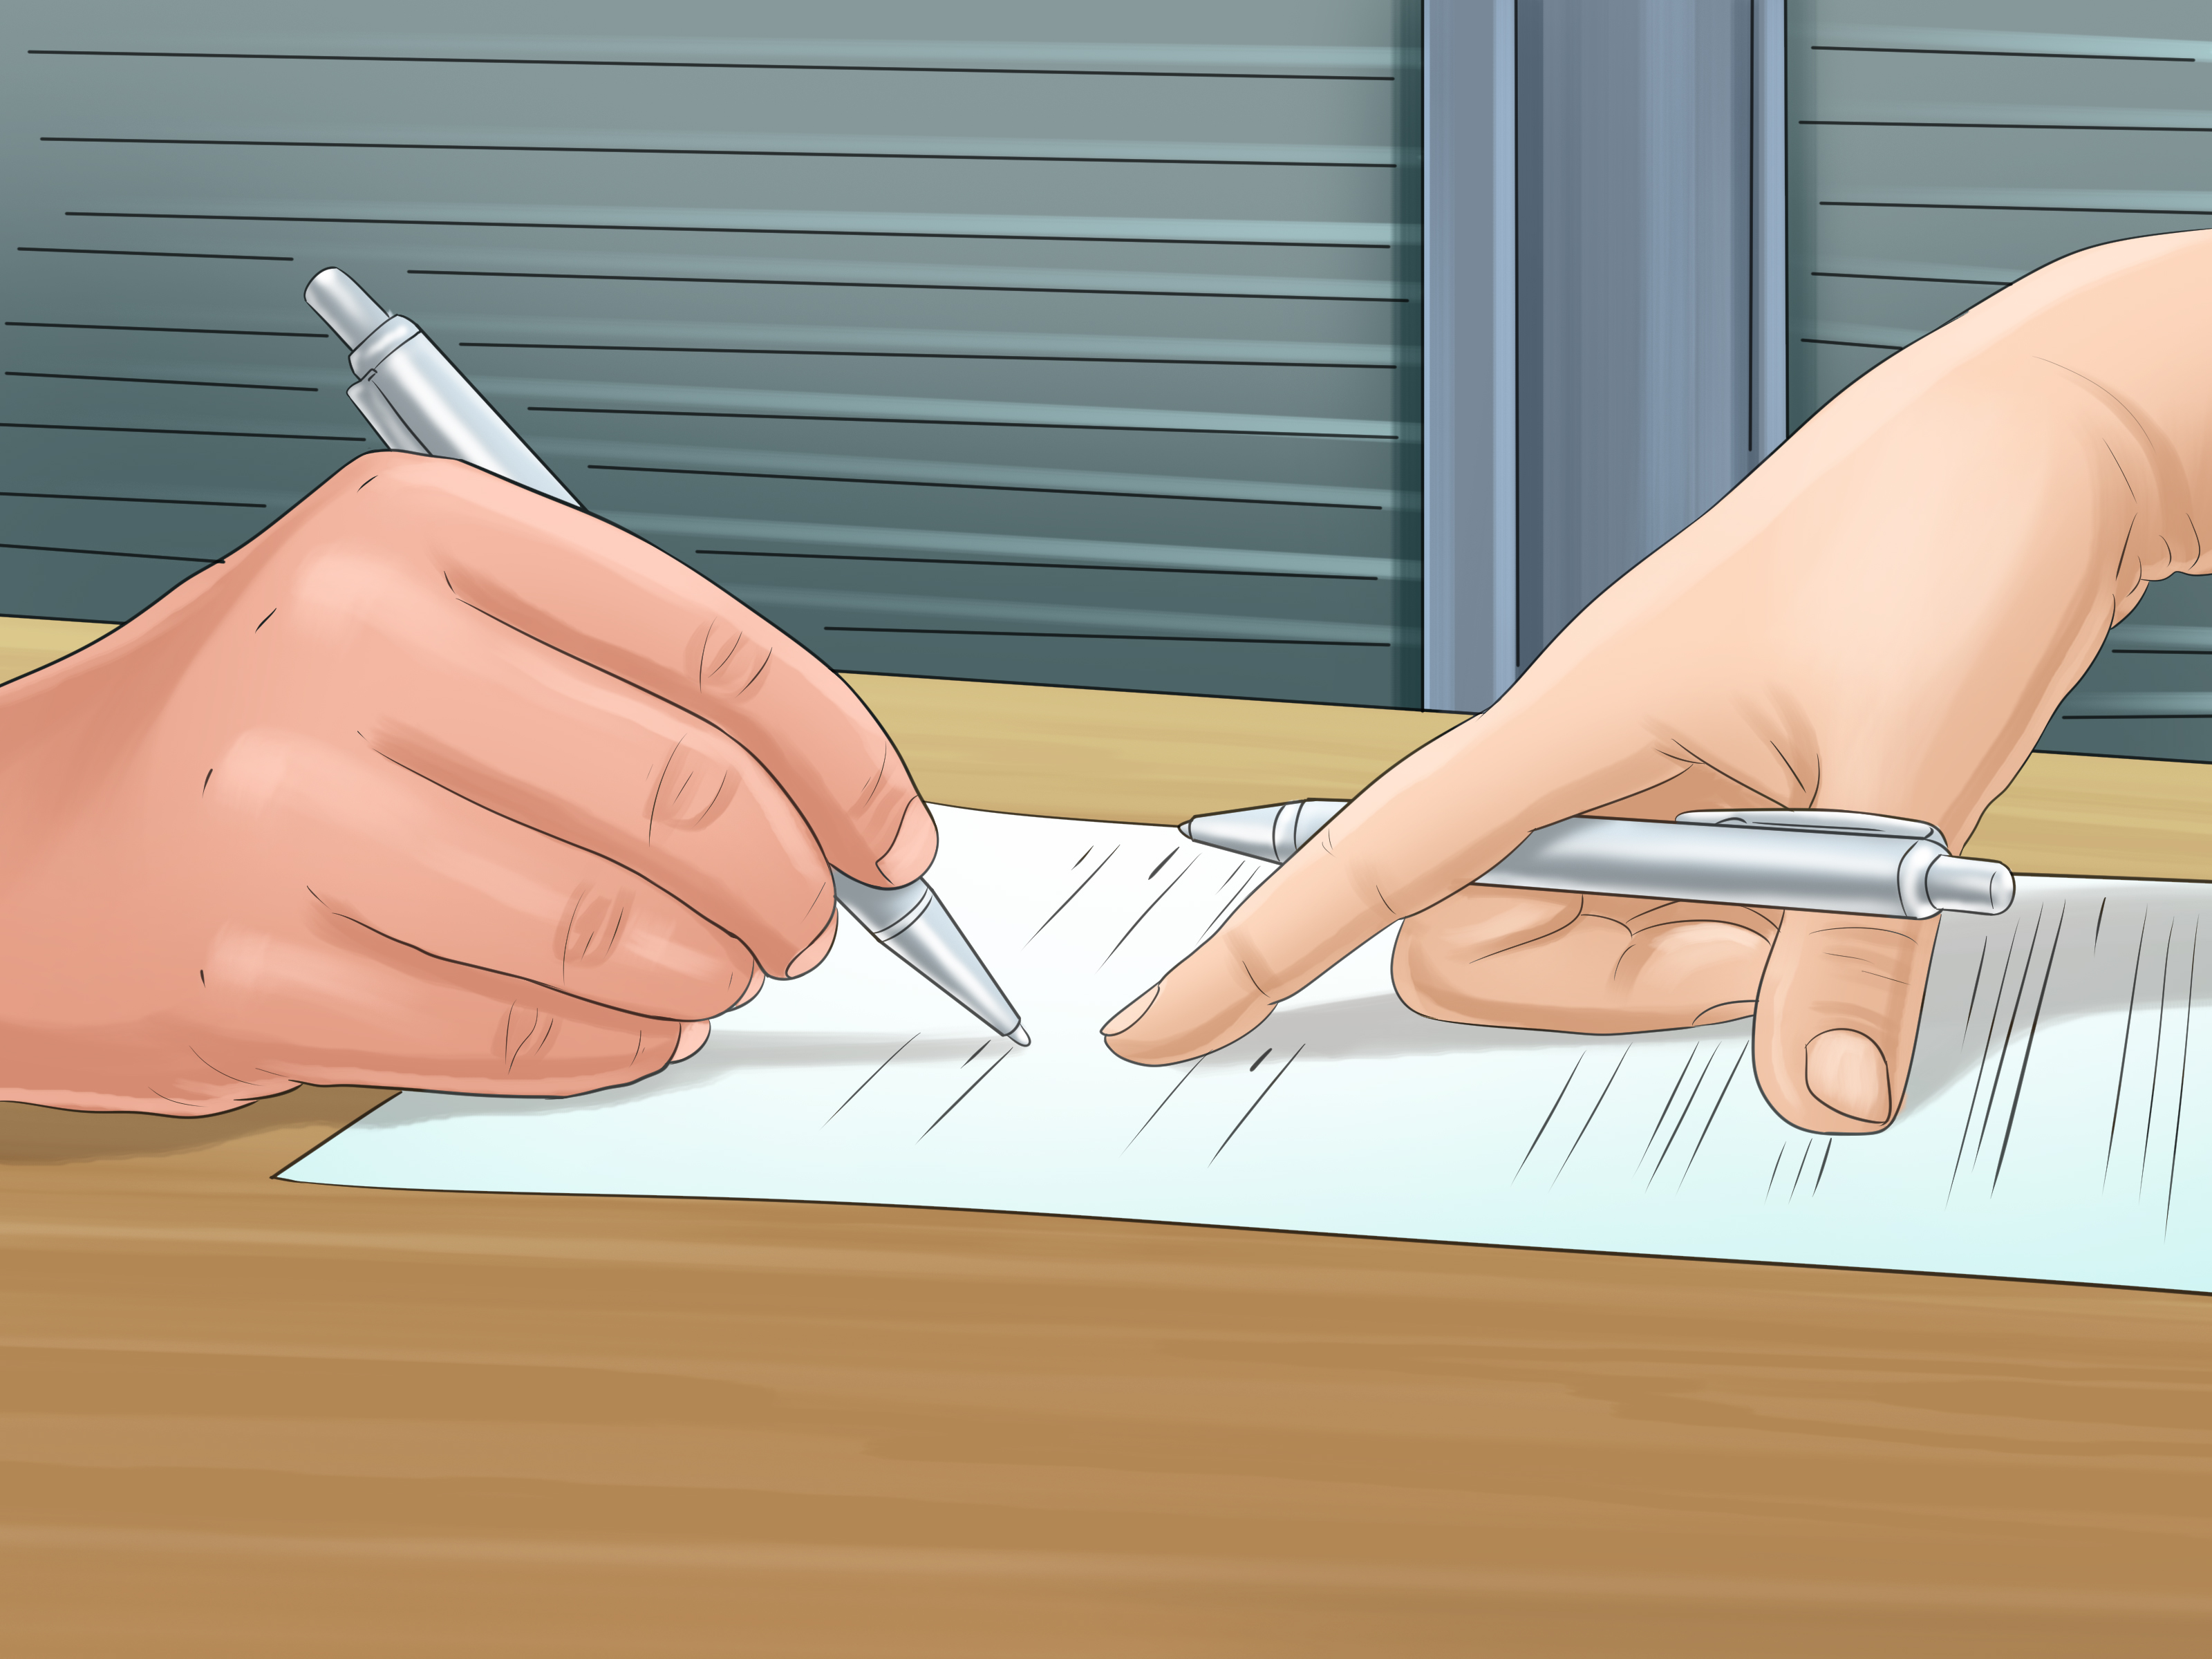 joint application for divorce on a draft agreement